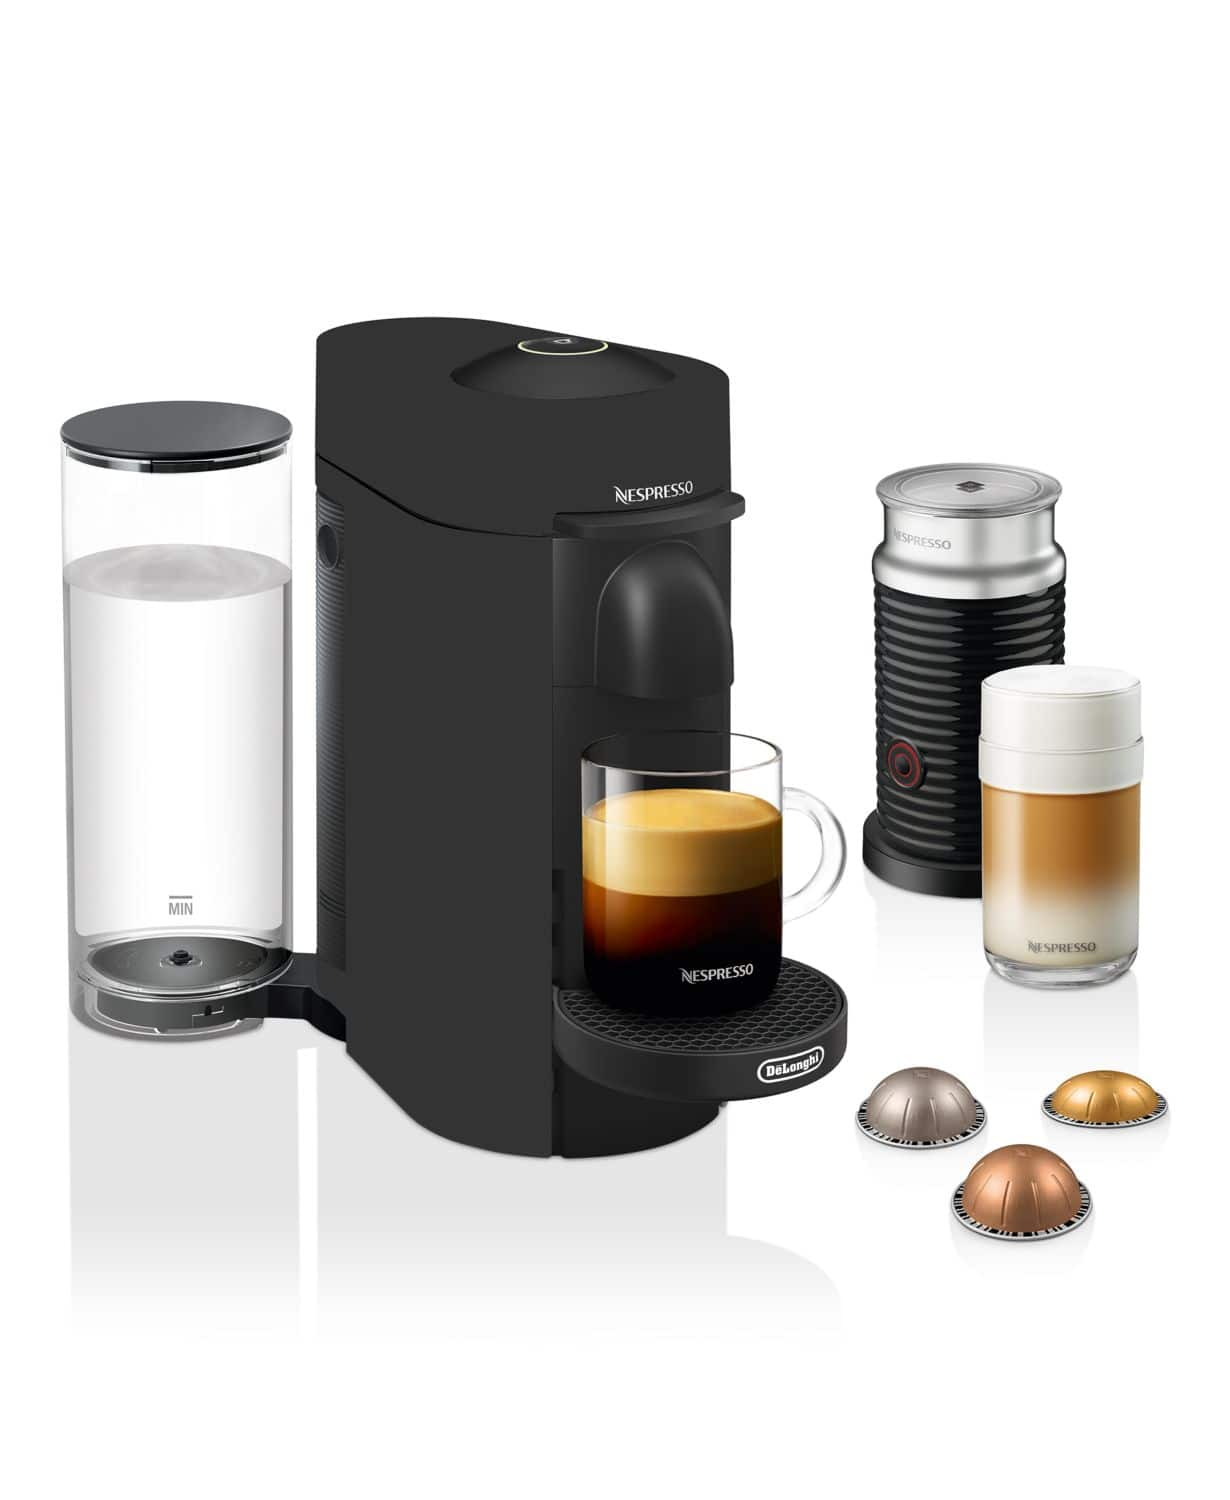 Nespresso  VertuoPlus Coffee and Espresso Maker with frother $99